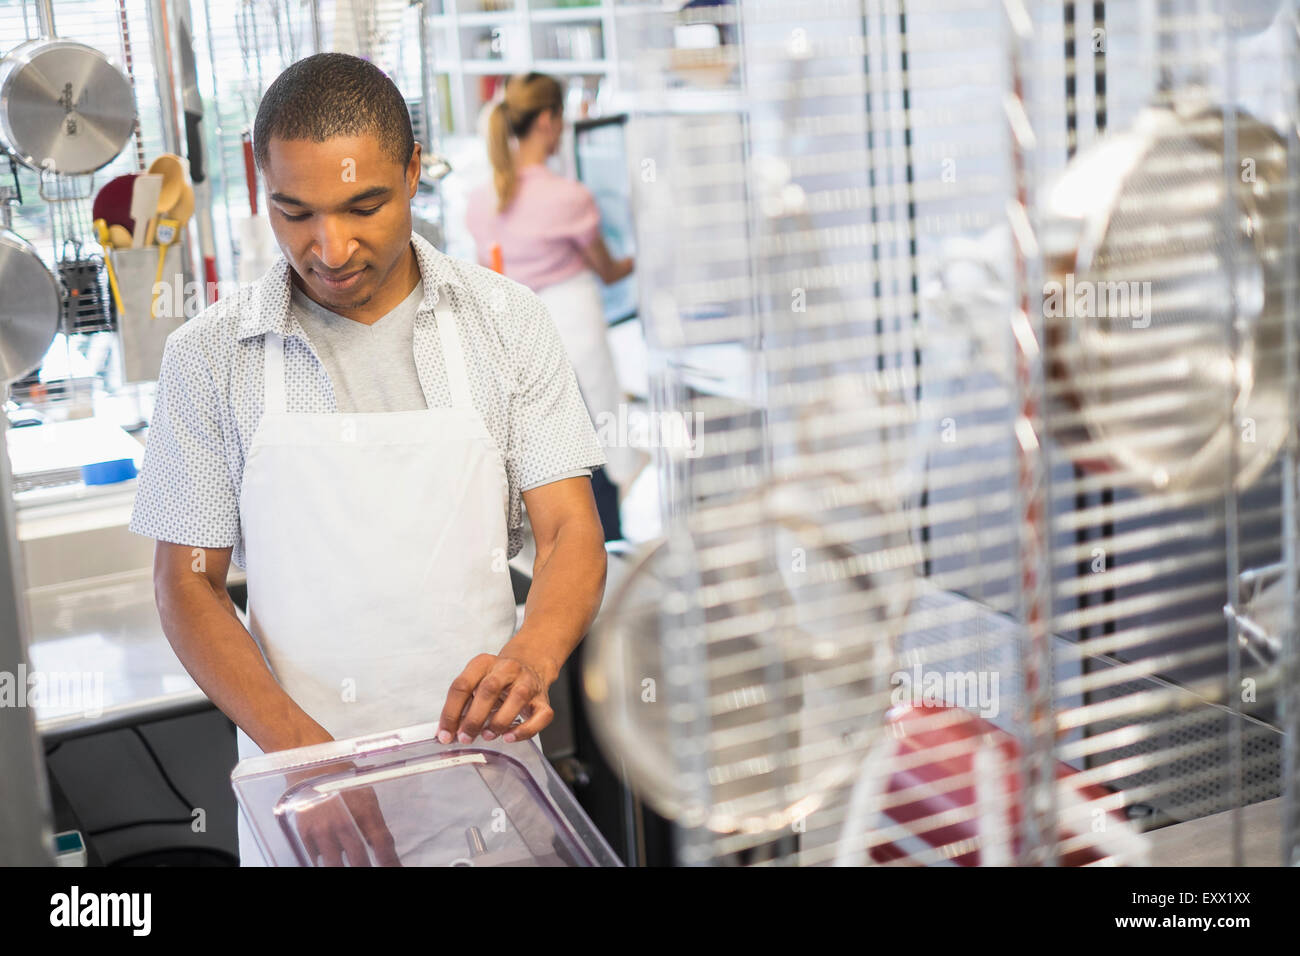 Bakery owner at work - Stock Image